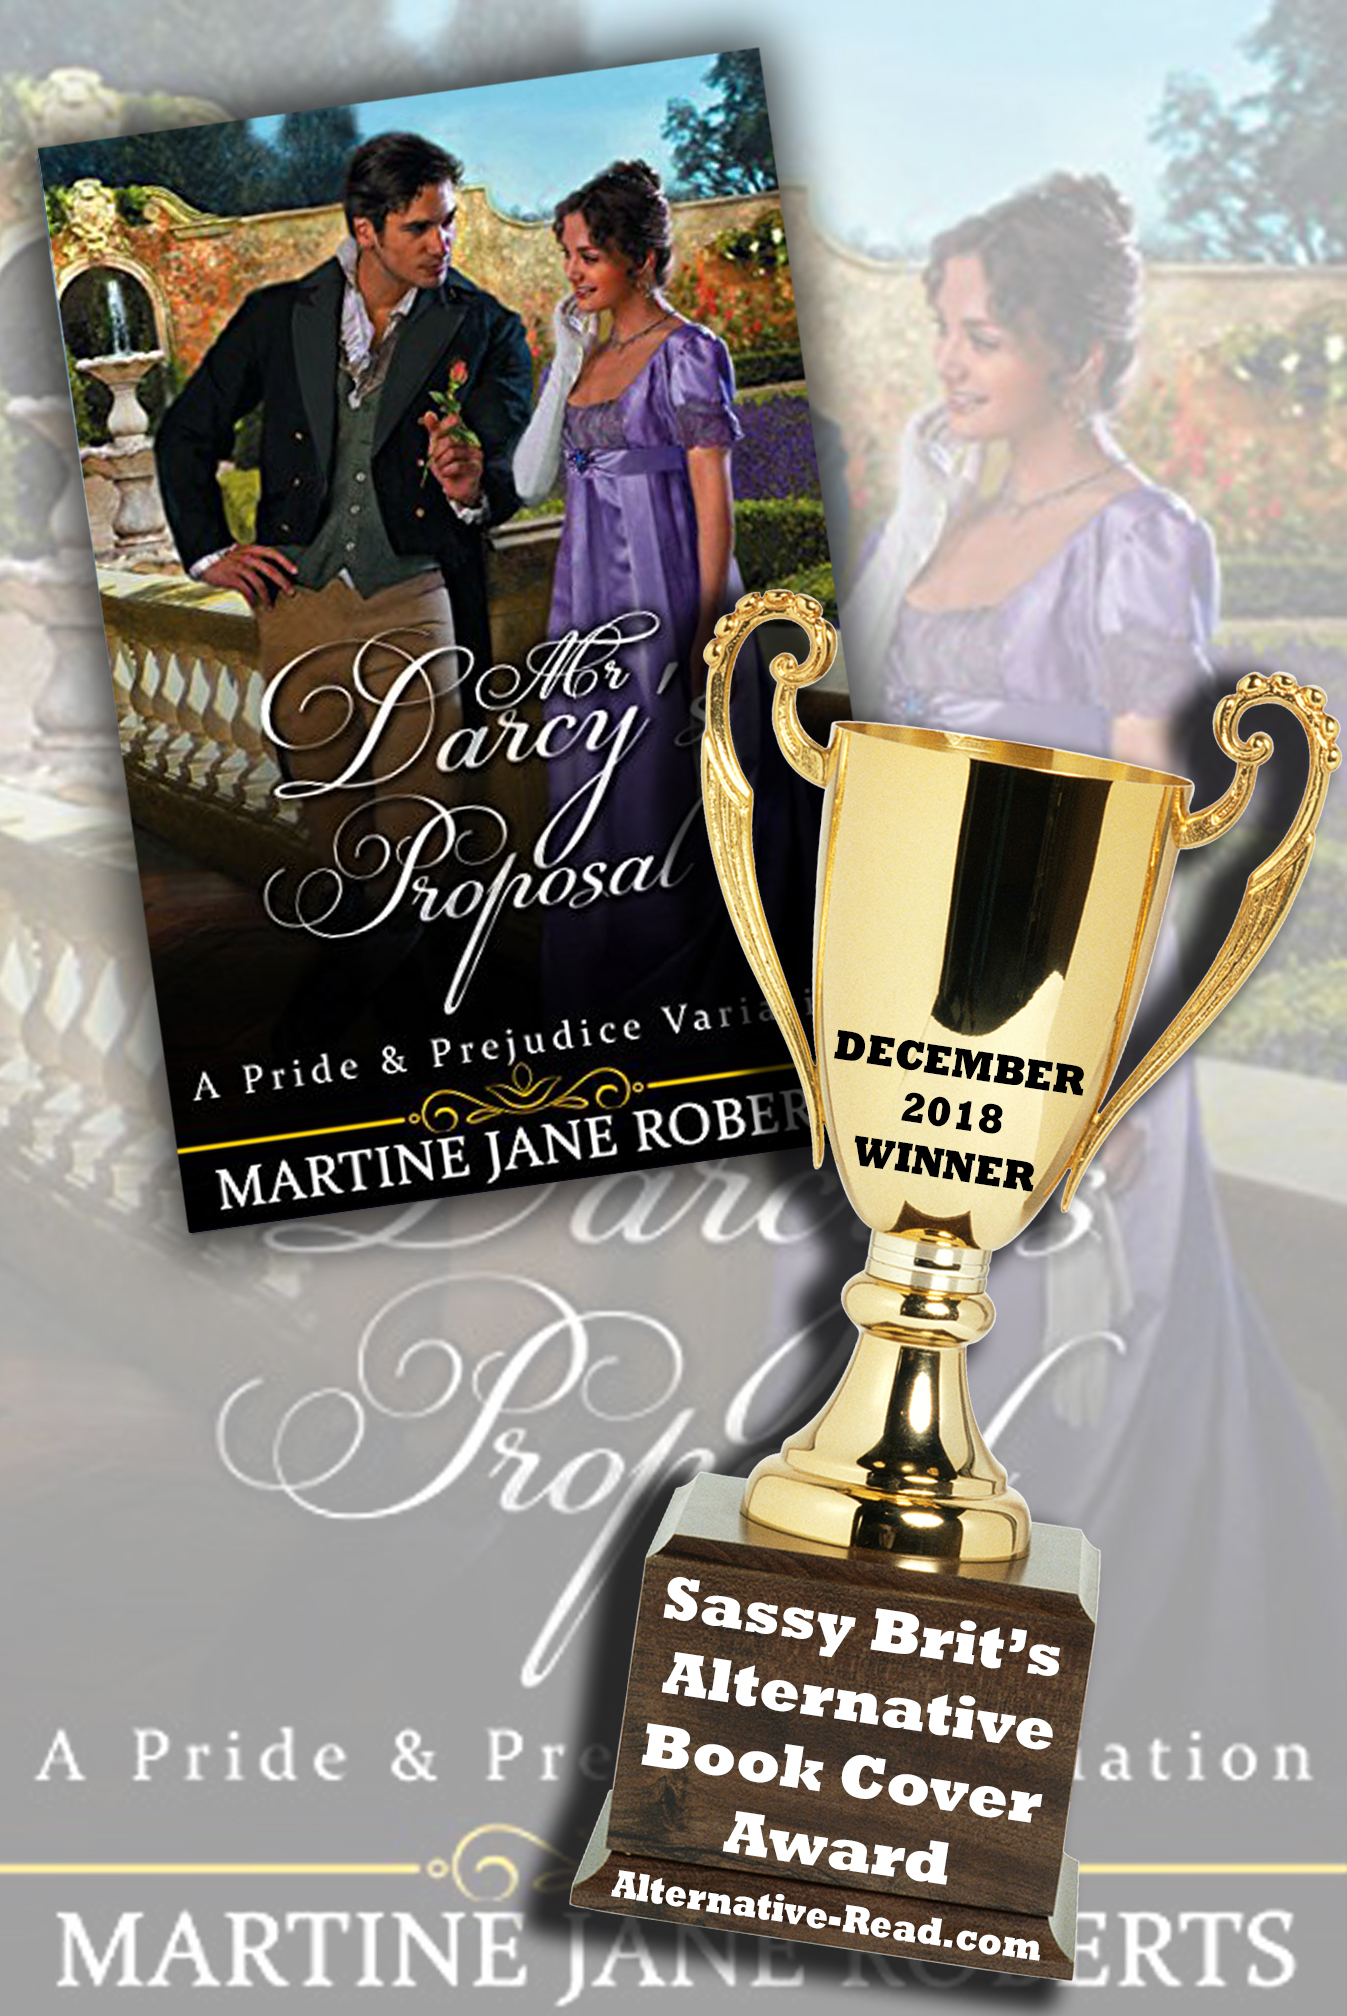 With her father's consent, Fitzwilliam Darcy proposes to Elizabeth Bennet, but she is adamant in her refusal. Yet during his daily visits, as he slowly reveals his softer side, Elizabeth's feelings begin to change. But then George Wickham appears, and with a secret accomplice threatens to destroy everything, including them!. ~ The DEC 2018 Alternative Book Cover Award Winner!